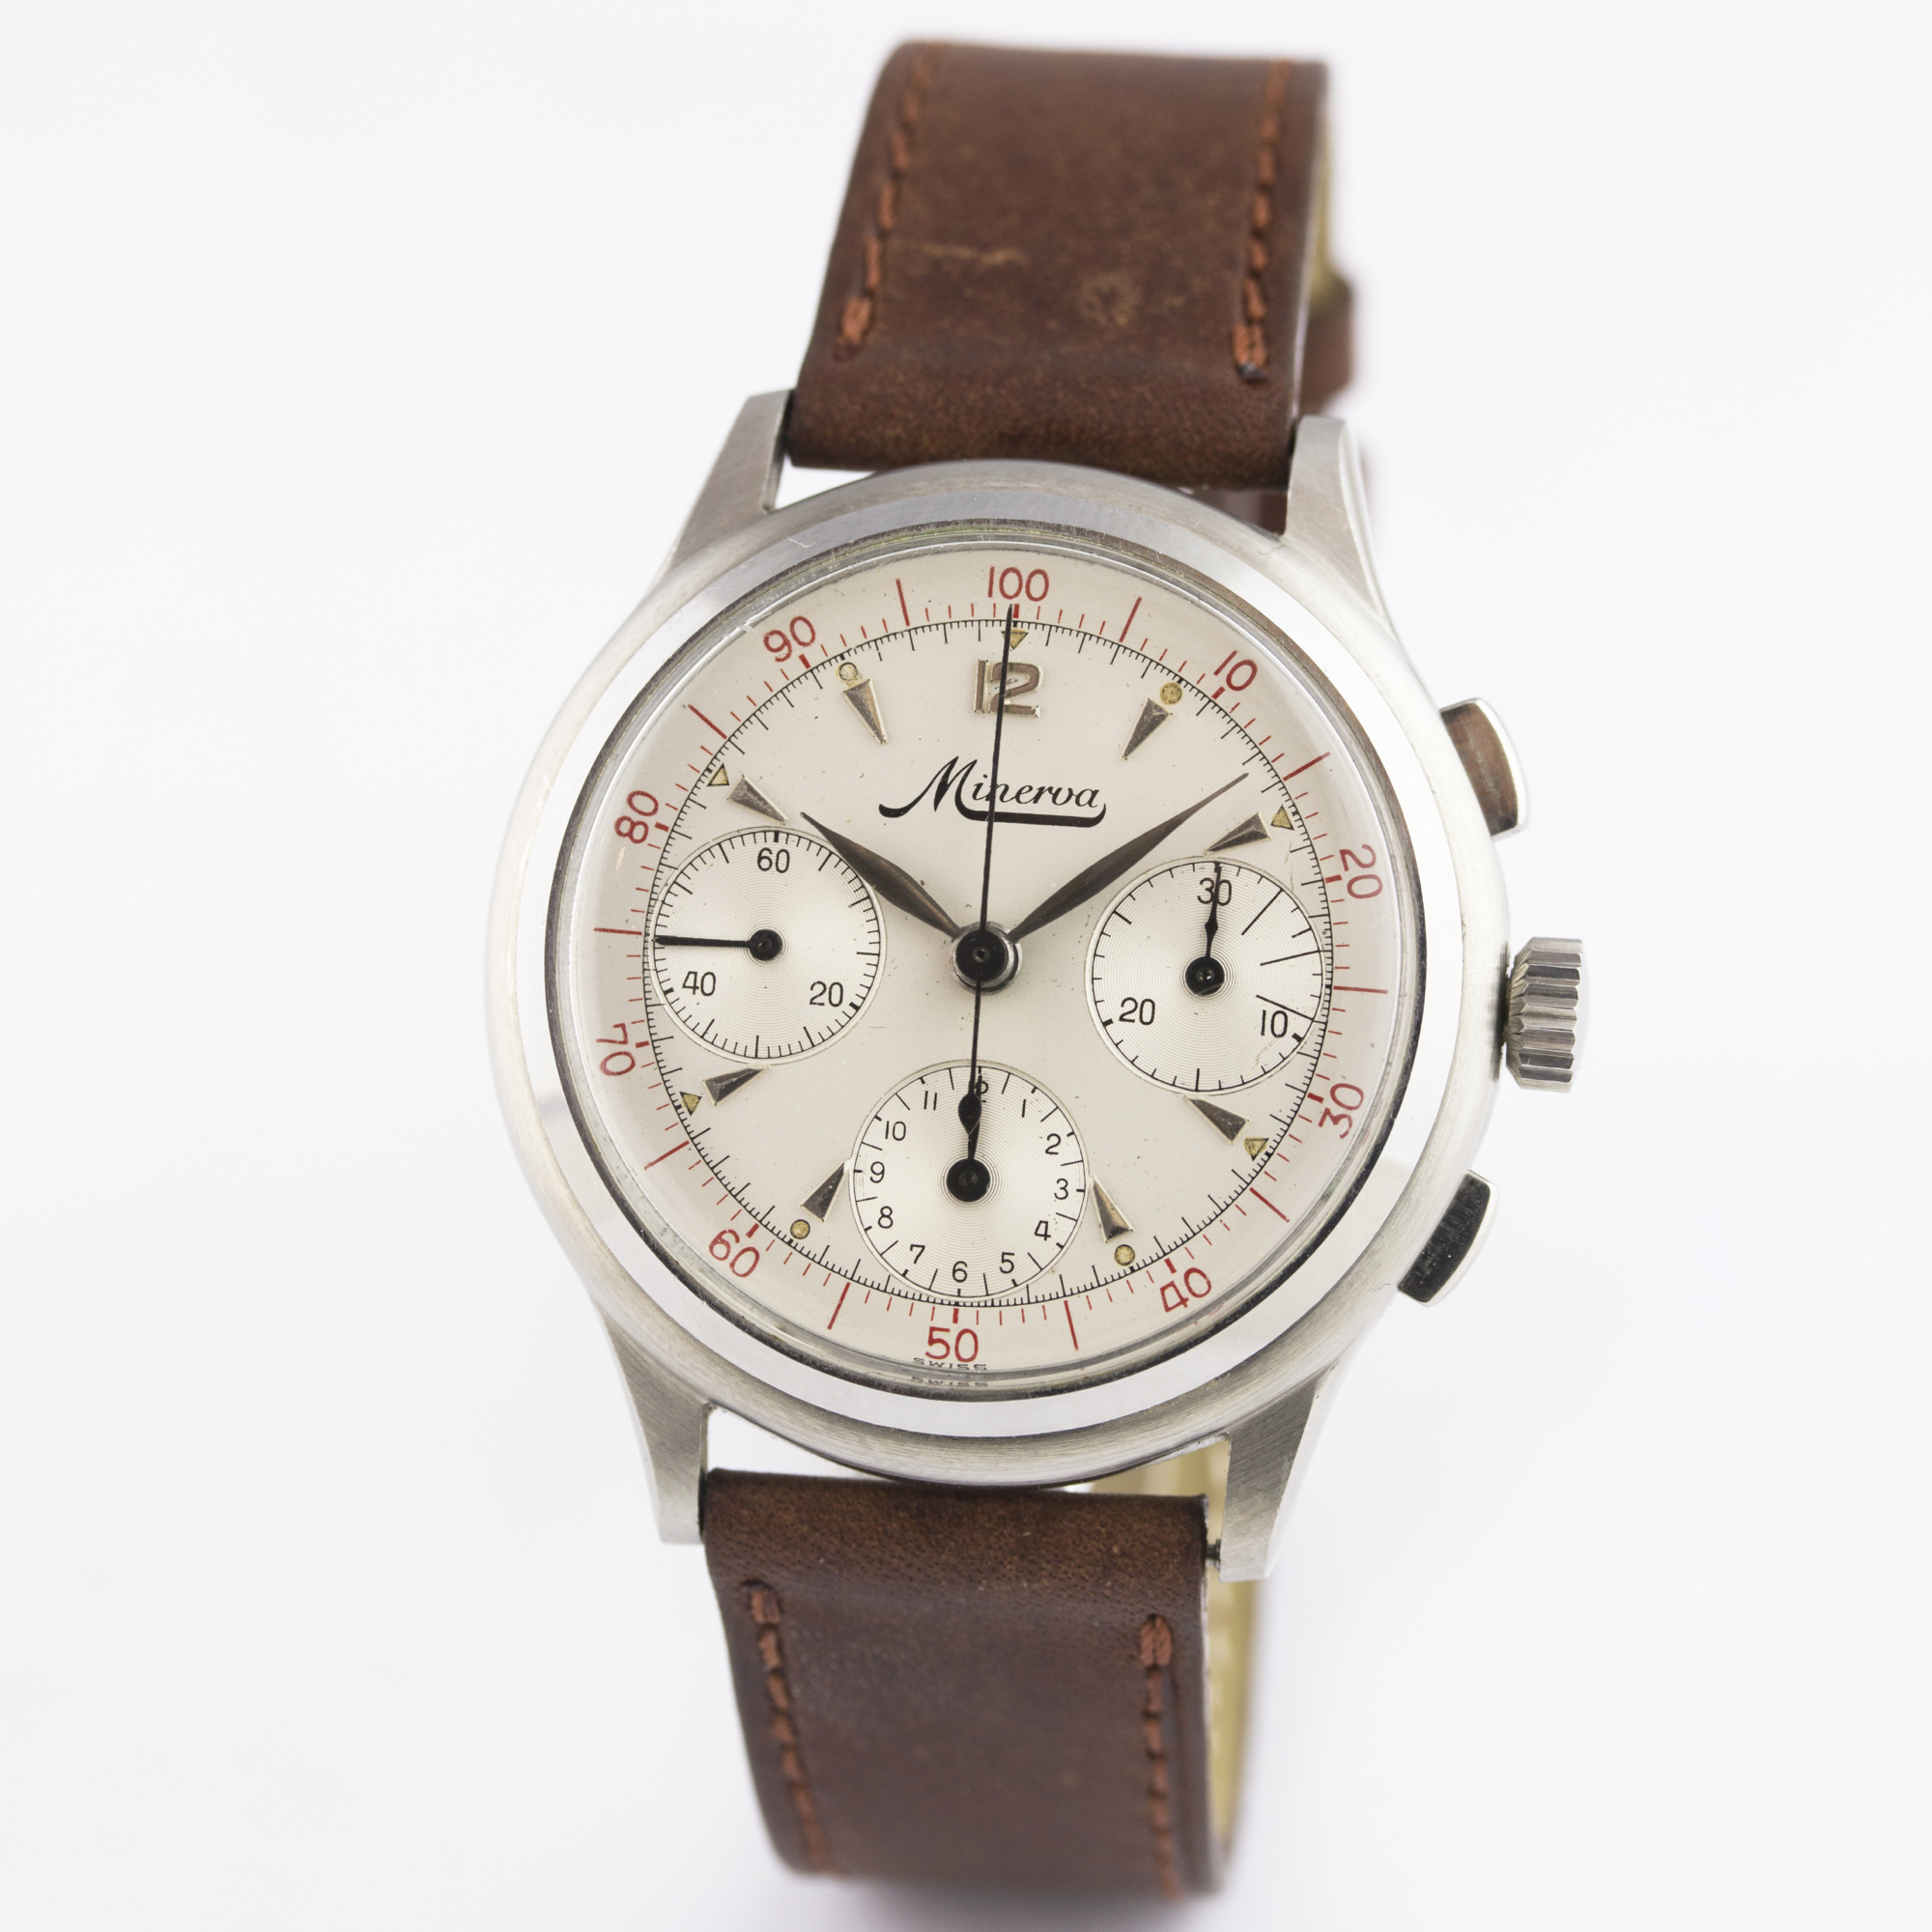 A RARE GENTLEMAN'S STAINLESS STEEL MINERVA DECIMAL CHRONOGRAPH WRIST WATCH CIRCA 1950s D: Silver - Image 3 of 9